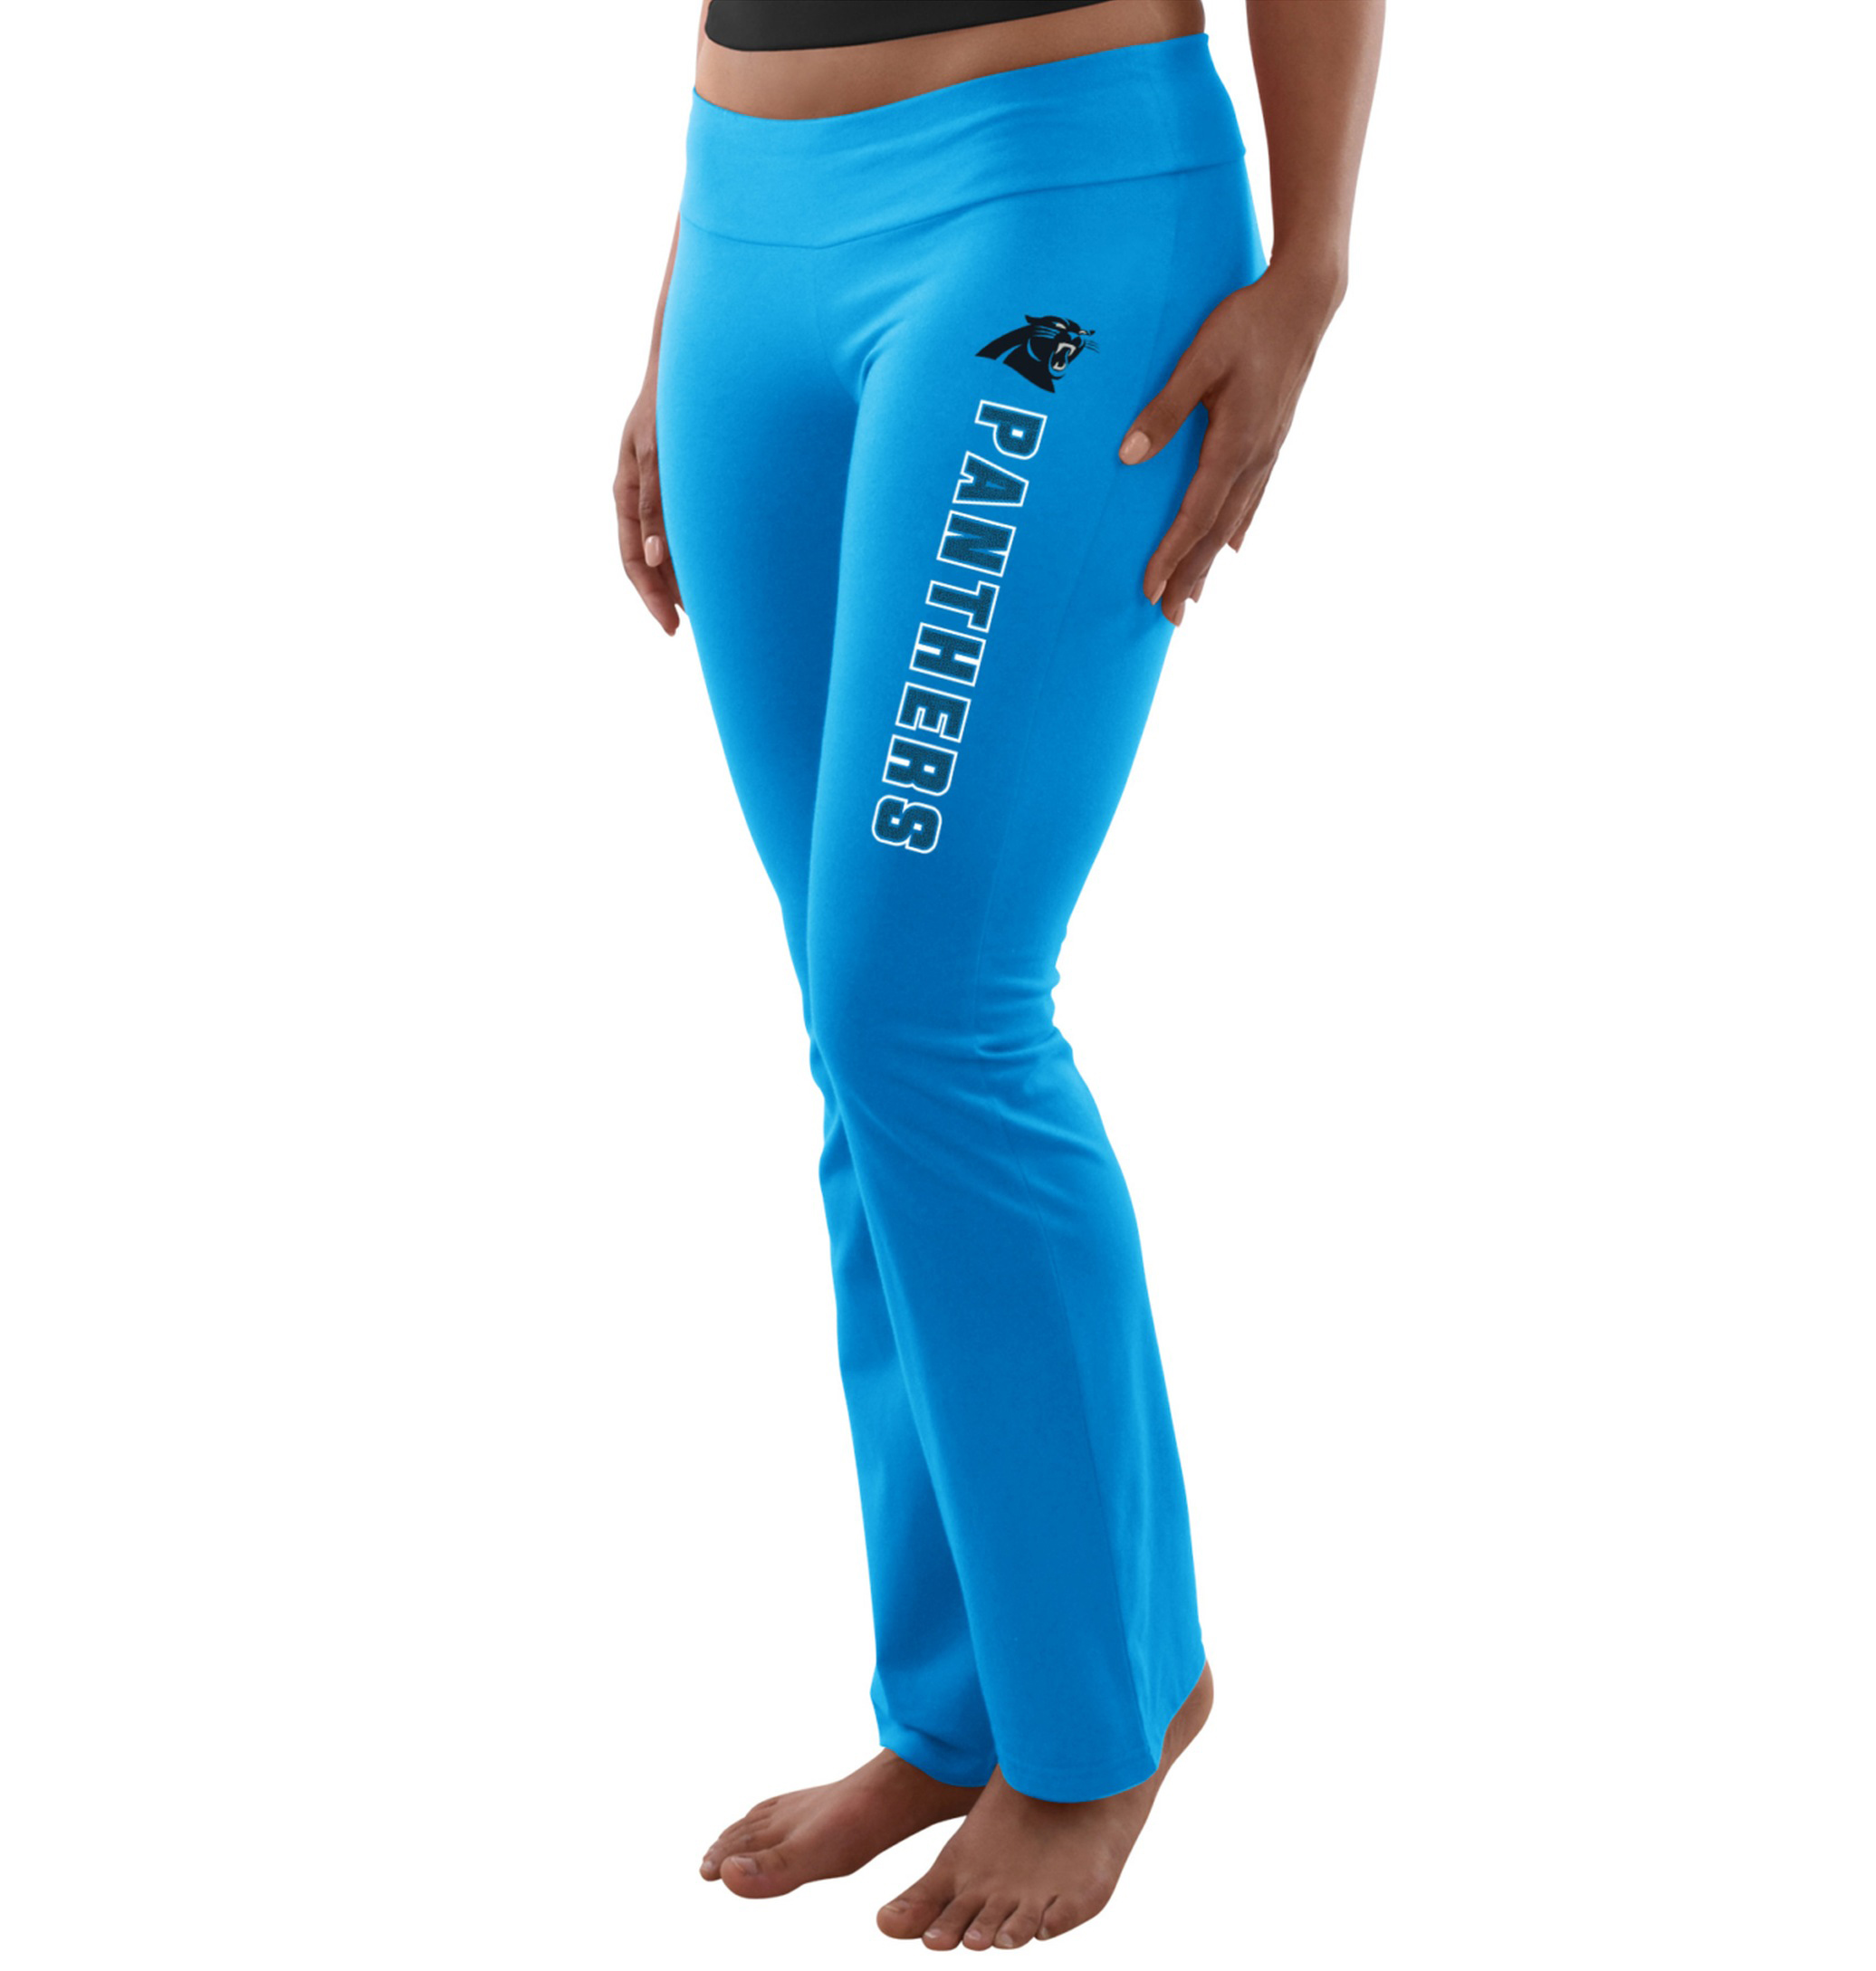 NFL Carolina Panthers Attitude Overload Women's Yoga Pant by